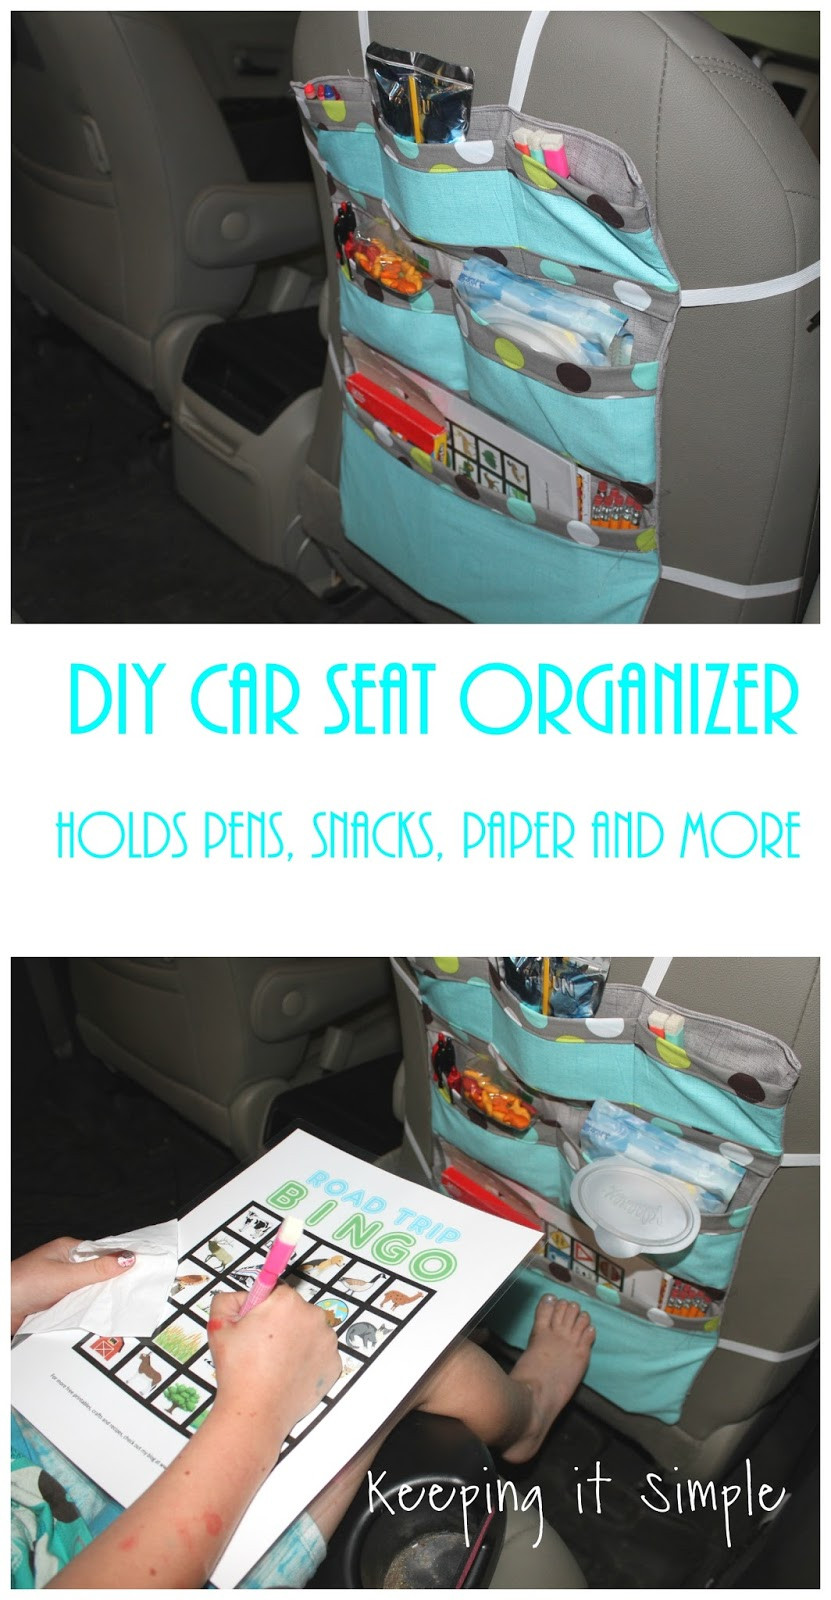 Best ideas about DIY Car Organizers . Save or Pin Keeping it Simple DIY Car Seat Organizer Perfect for Now.